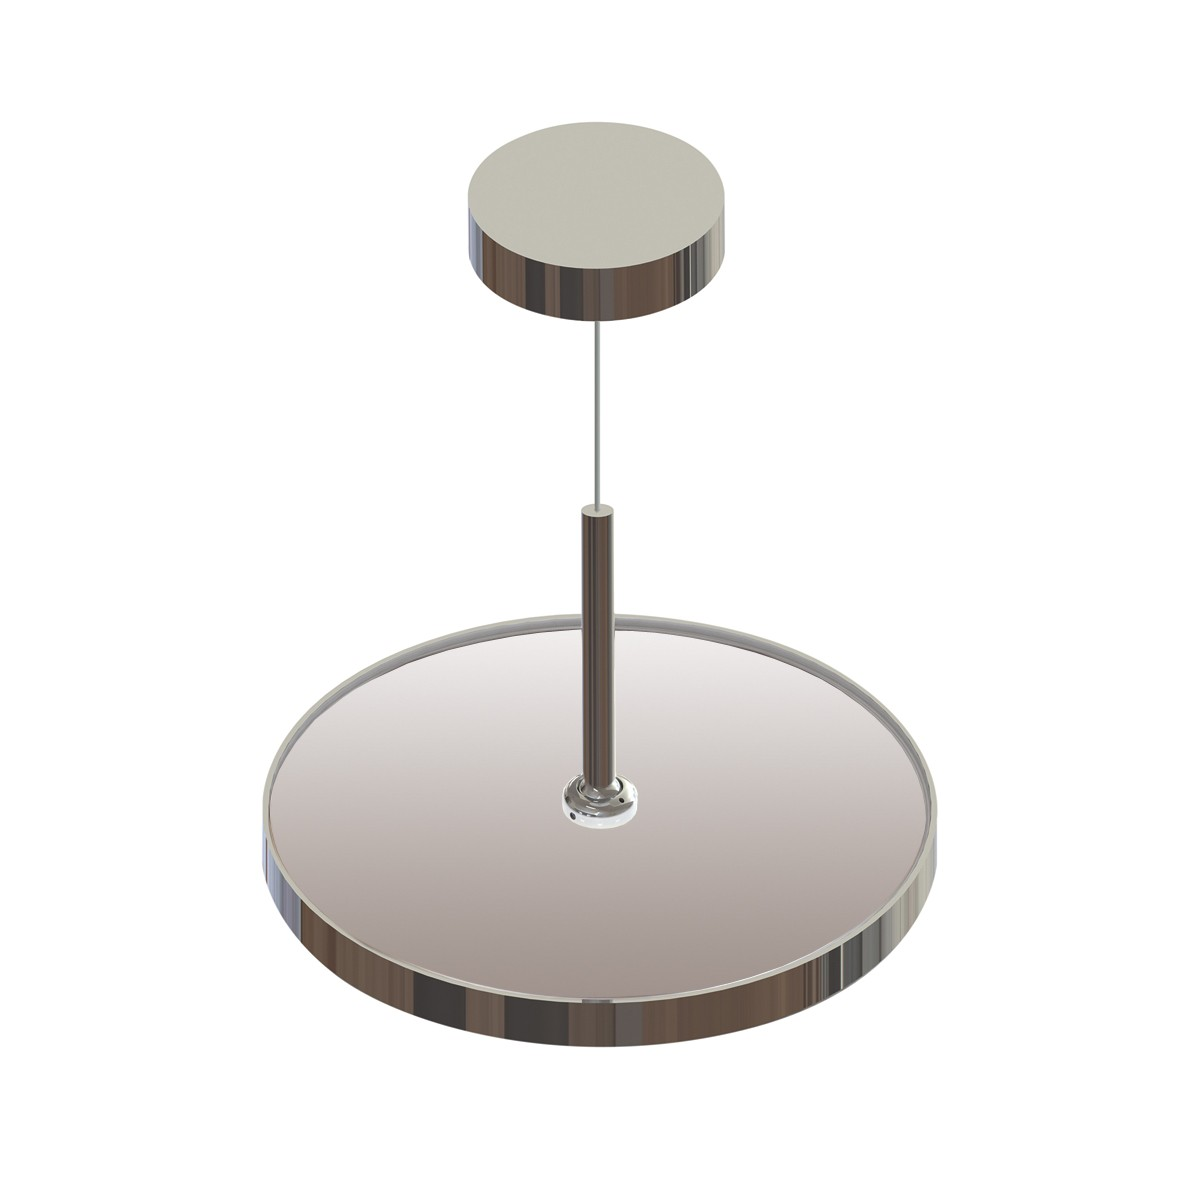 Top Light Sun Swing Ceiling Down Light Pendelleuchte, Ø: 9 cm